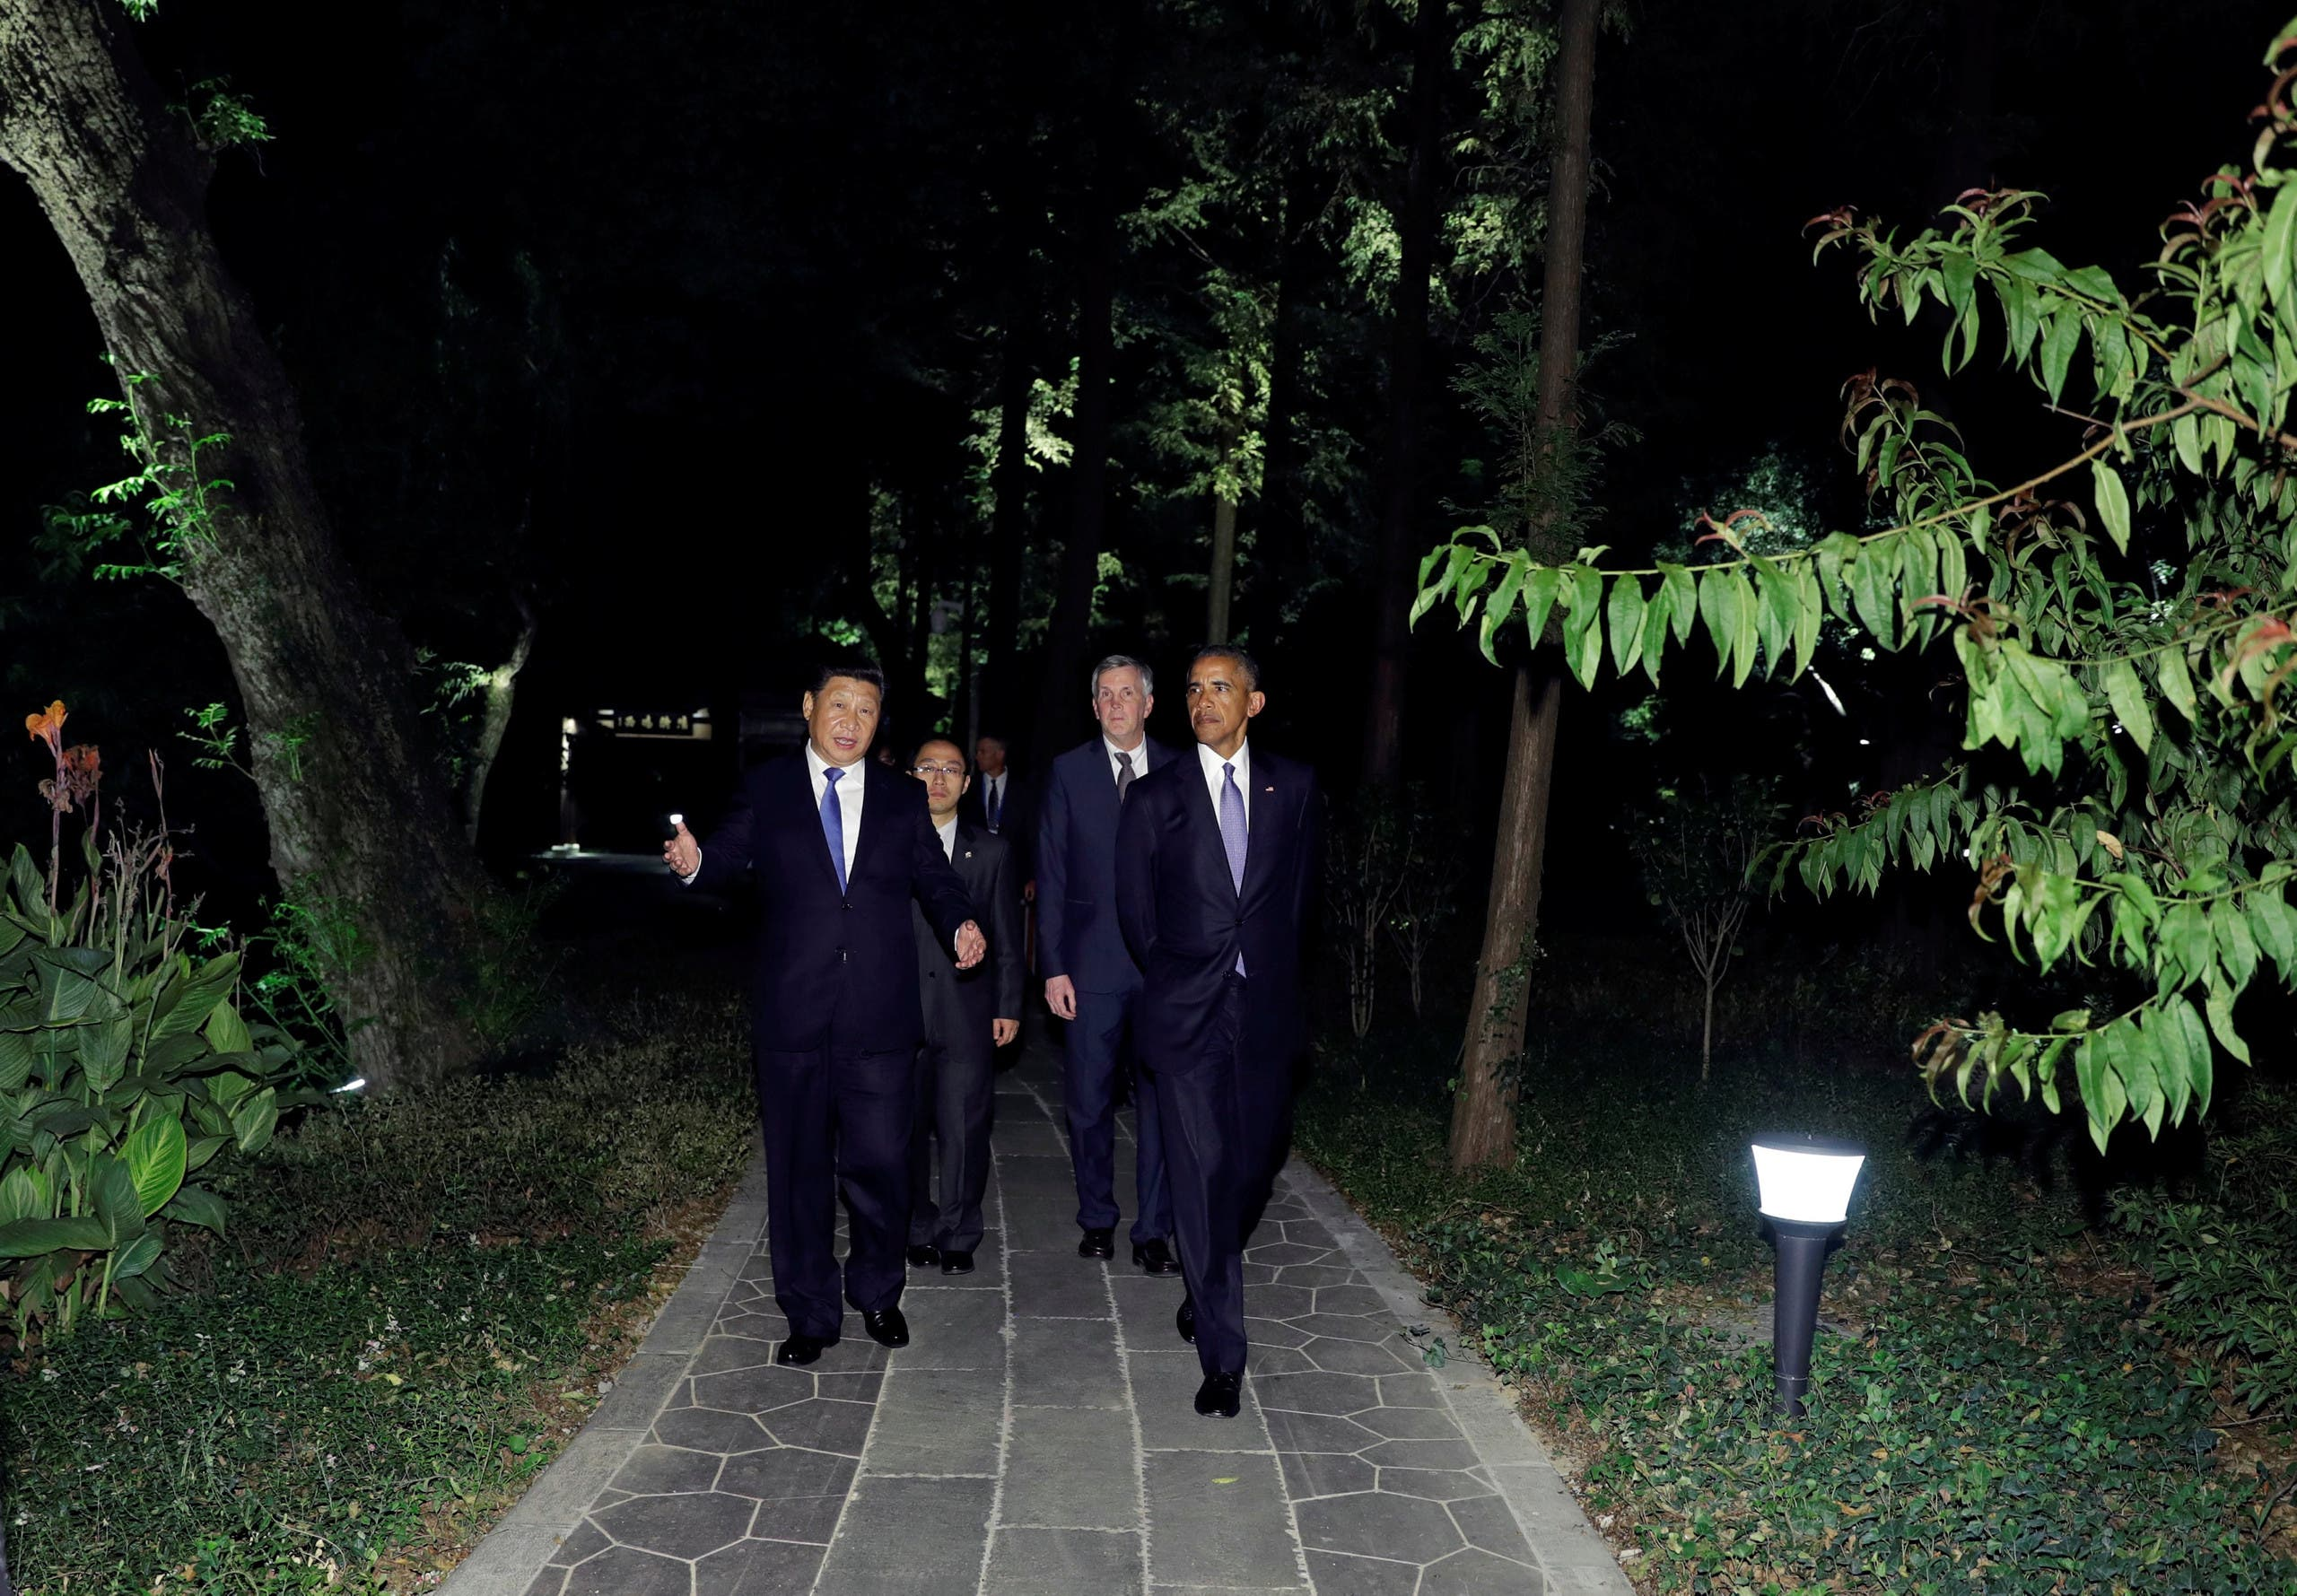 U.S. President Barack Obama and Chinese President Xi Jinping walk together at West Lake State Guest House in Hangzhou, in eastern China's Zhejiang province, September 3, 2016. REUTERS